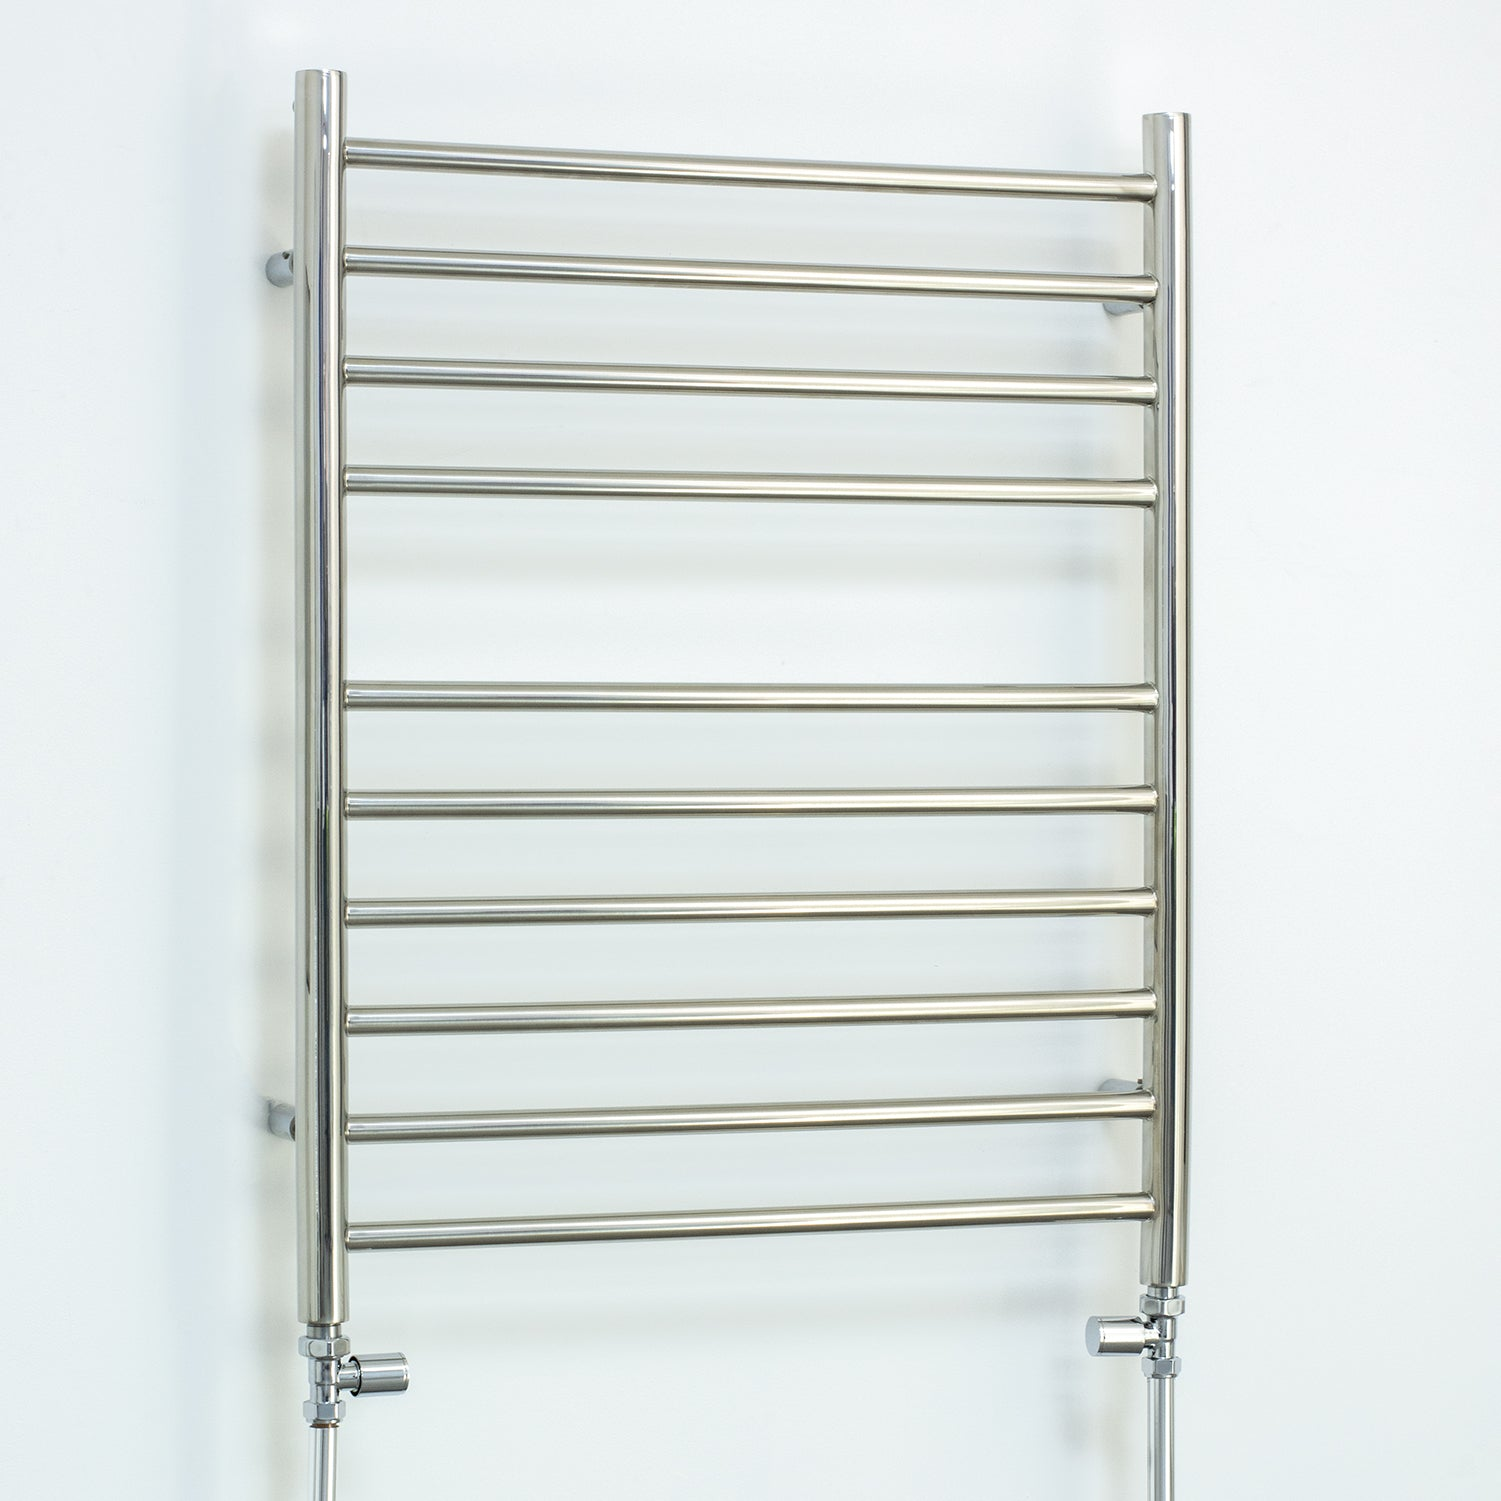 750 x 500 stainless steel towel rail radiator